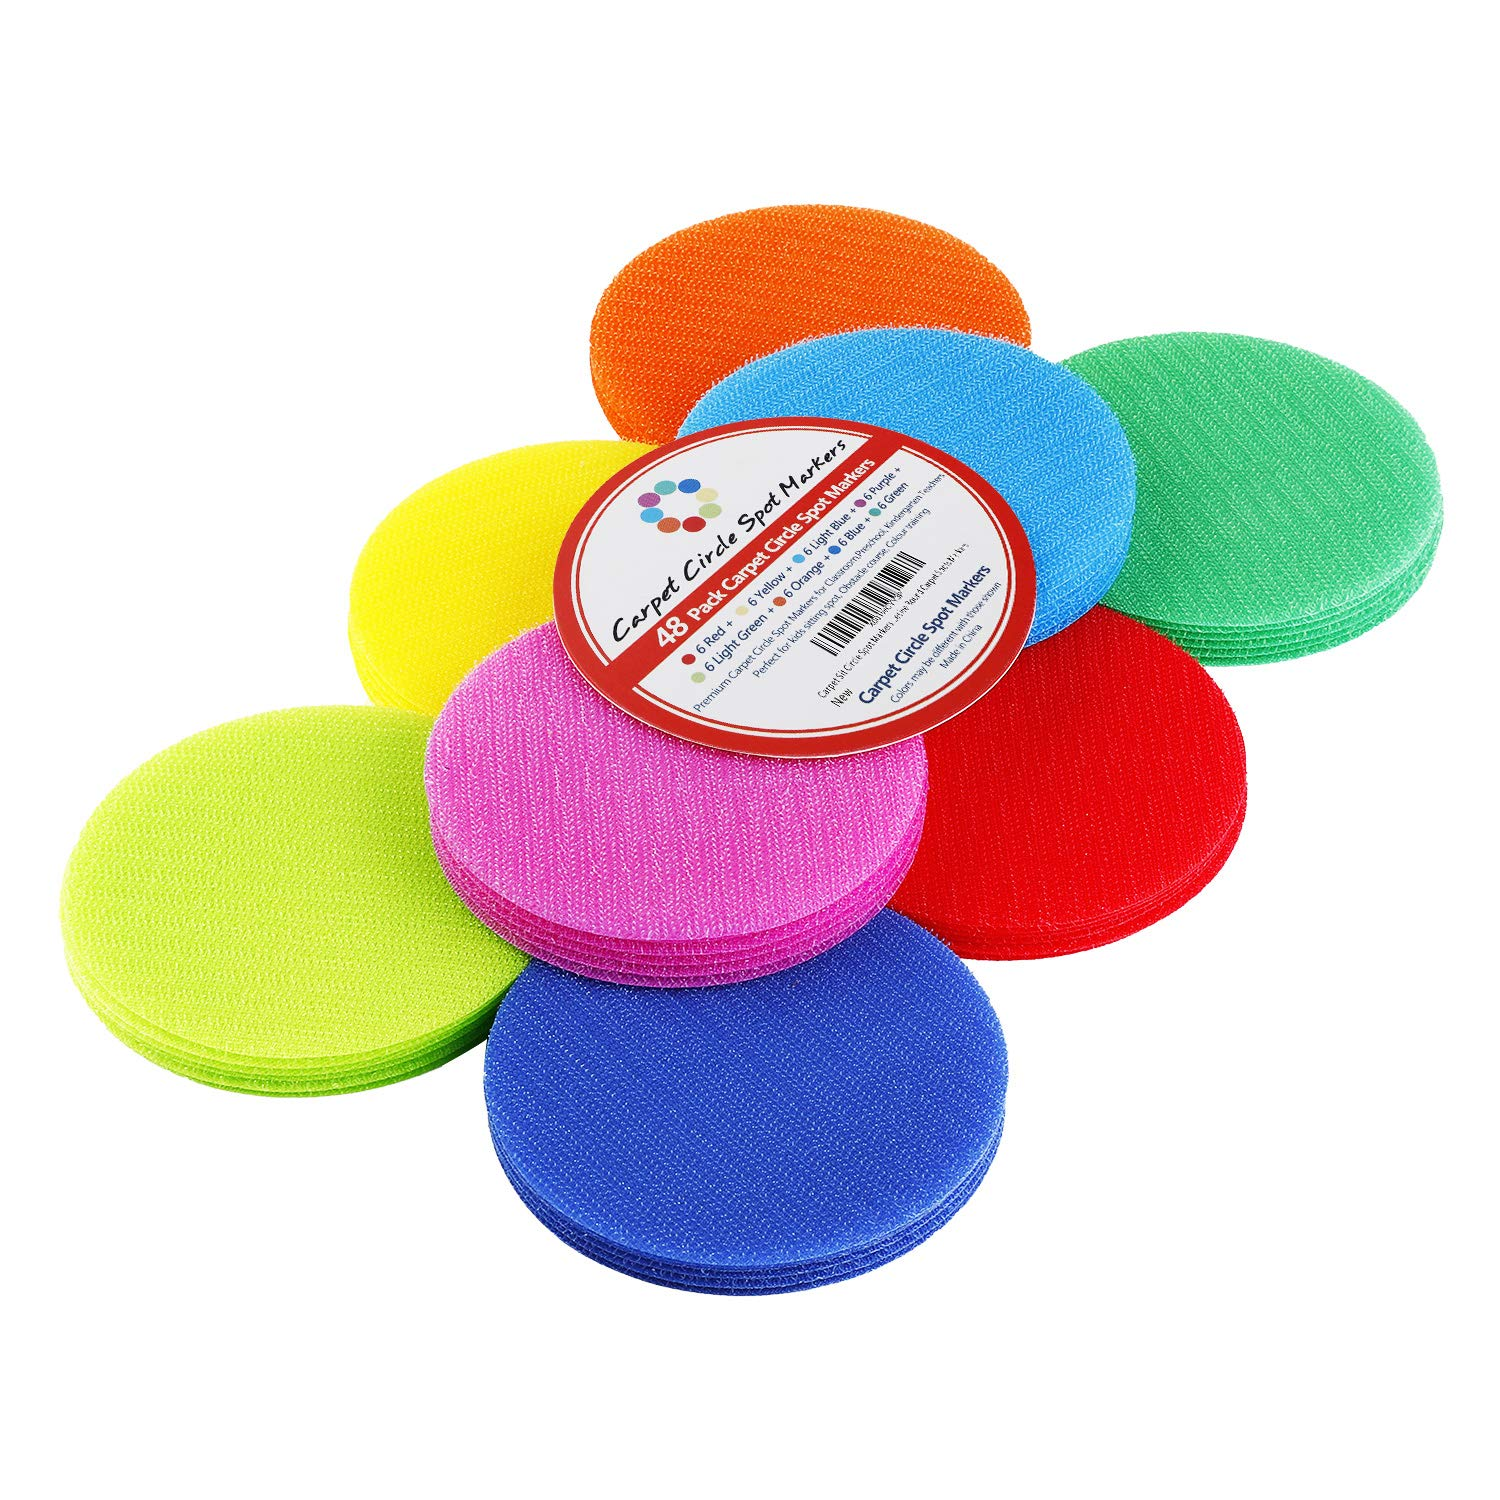 Classroom Carpet Circle Spots Markers 48 Pack 8 Colors for Kids Classroom Rug Markers Seating Floor Circle Spots for Students Preschool Kindergarten Teachers Floor Dots Adhesive Round Spots Markers